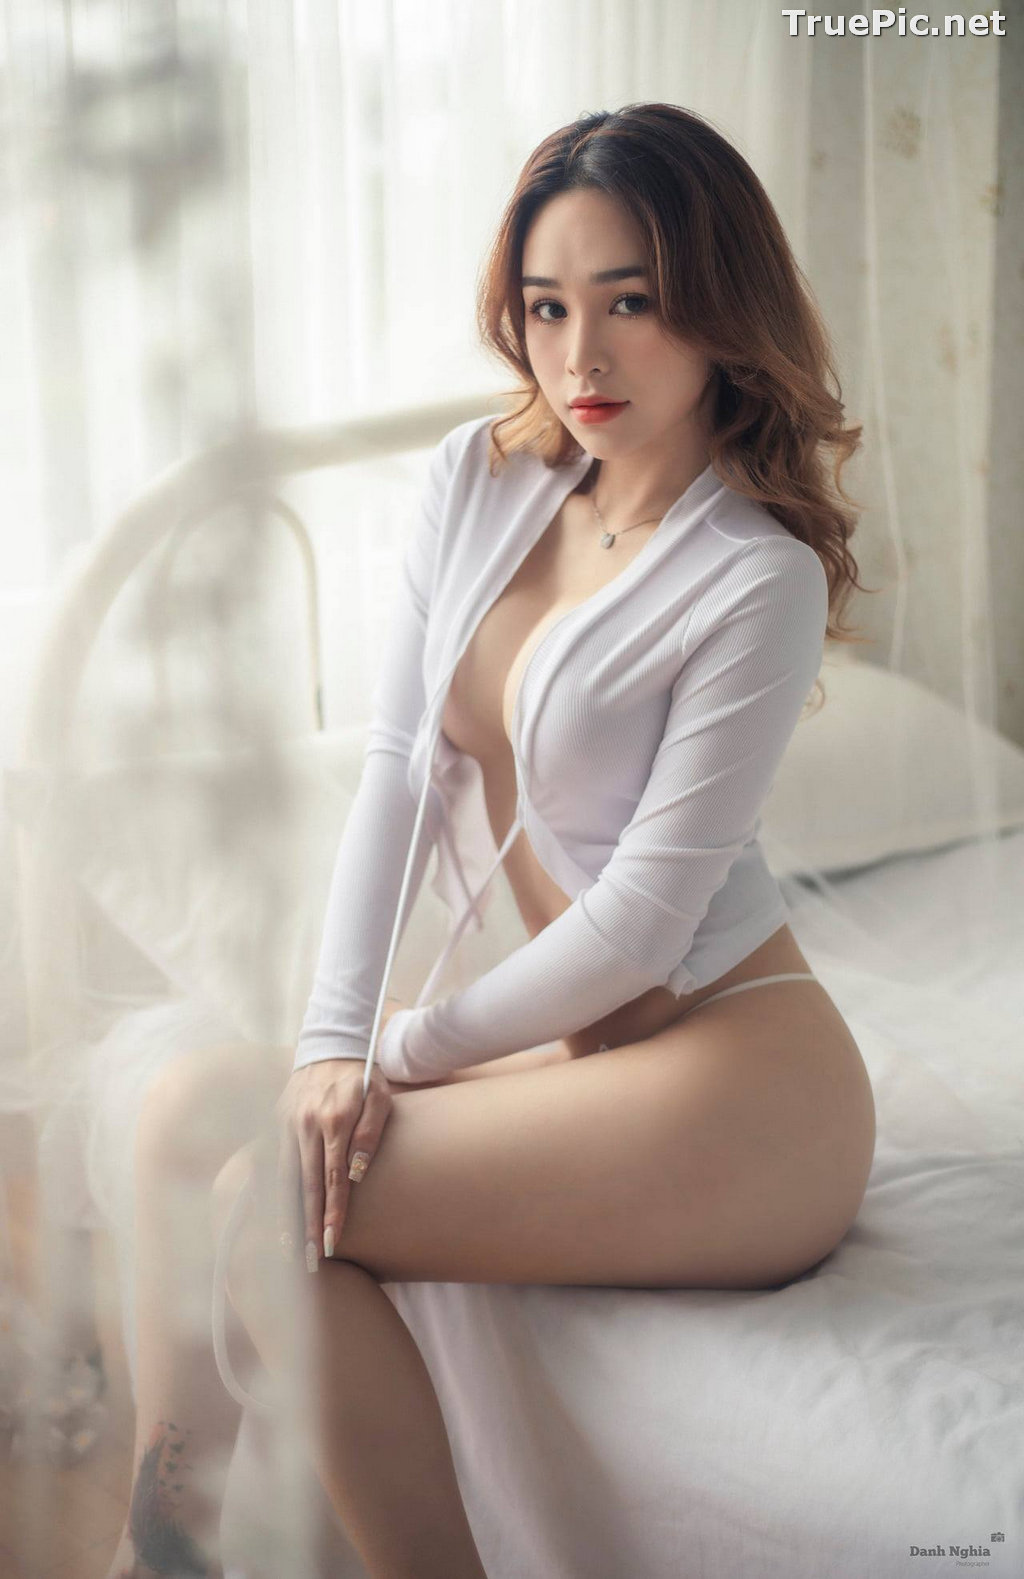 Image Vietnamese Sexy Model - Beautiful Body Curves - TruePic.net - Picture-10